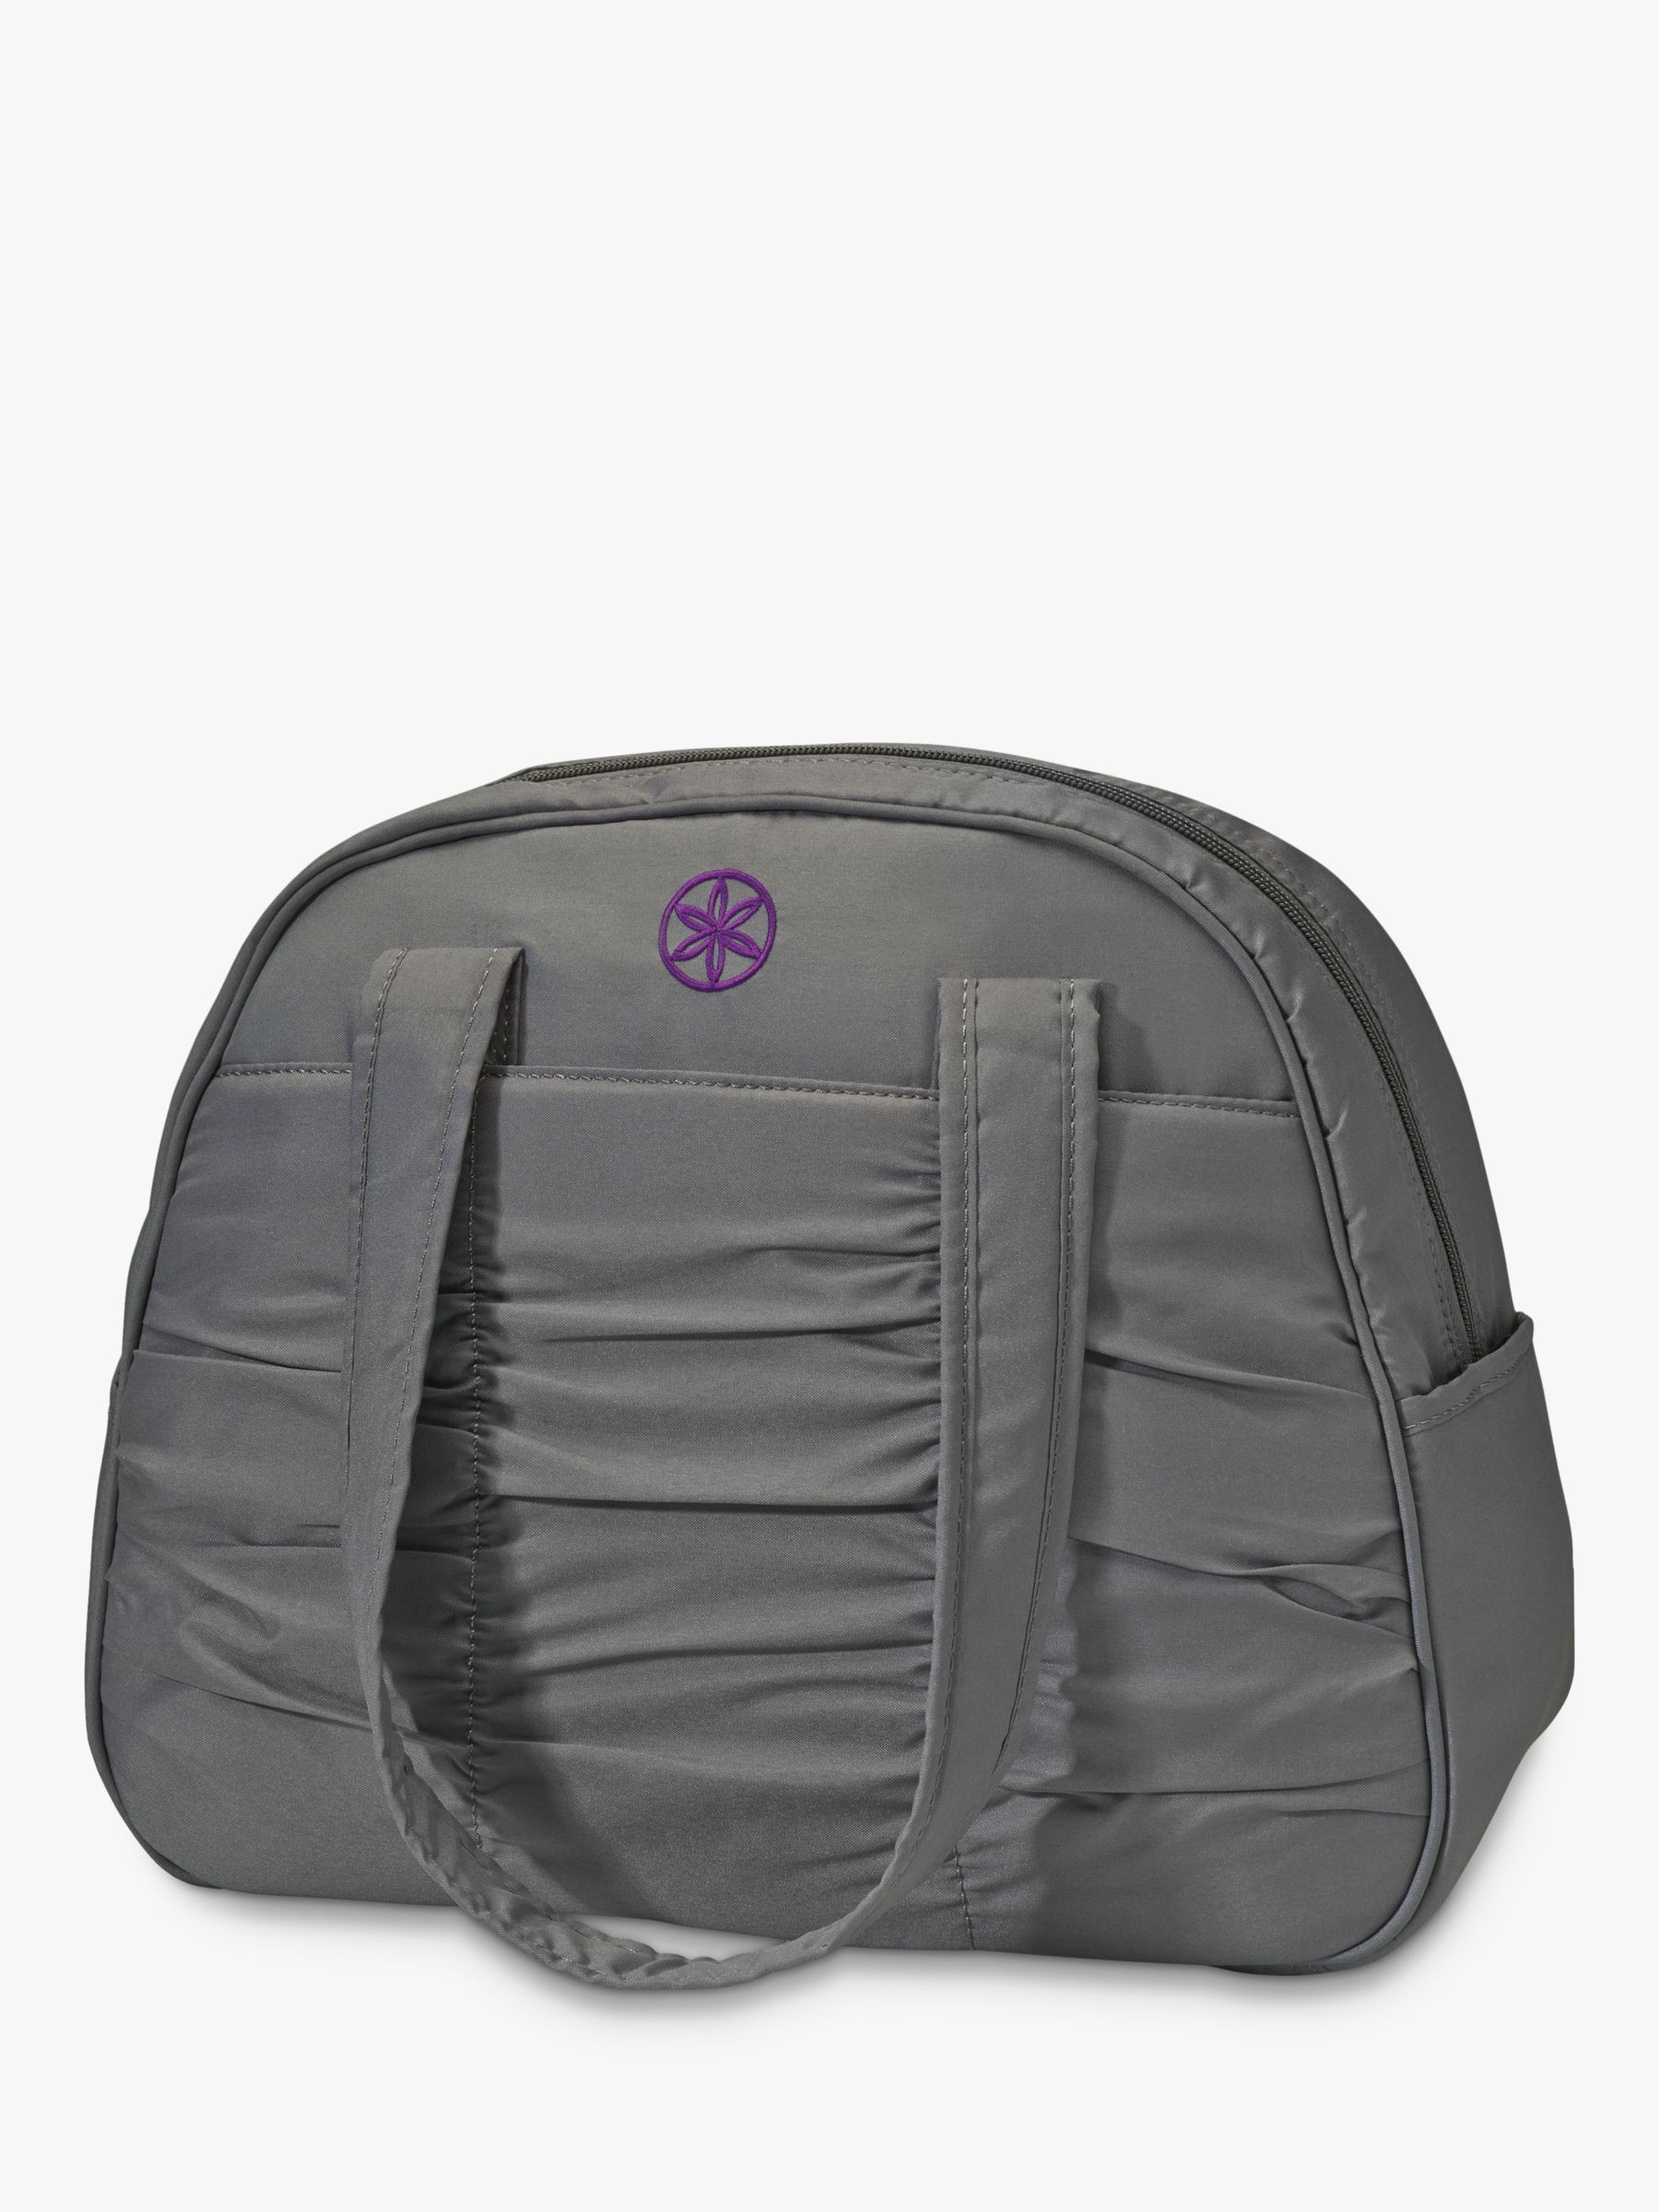 Gaiam Gaiam Metro Gym Bag, Grey